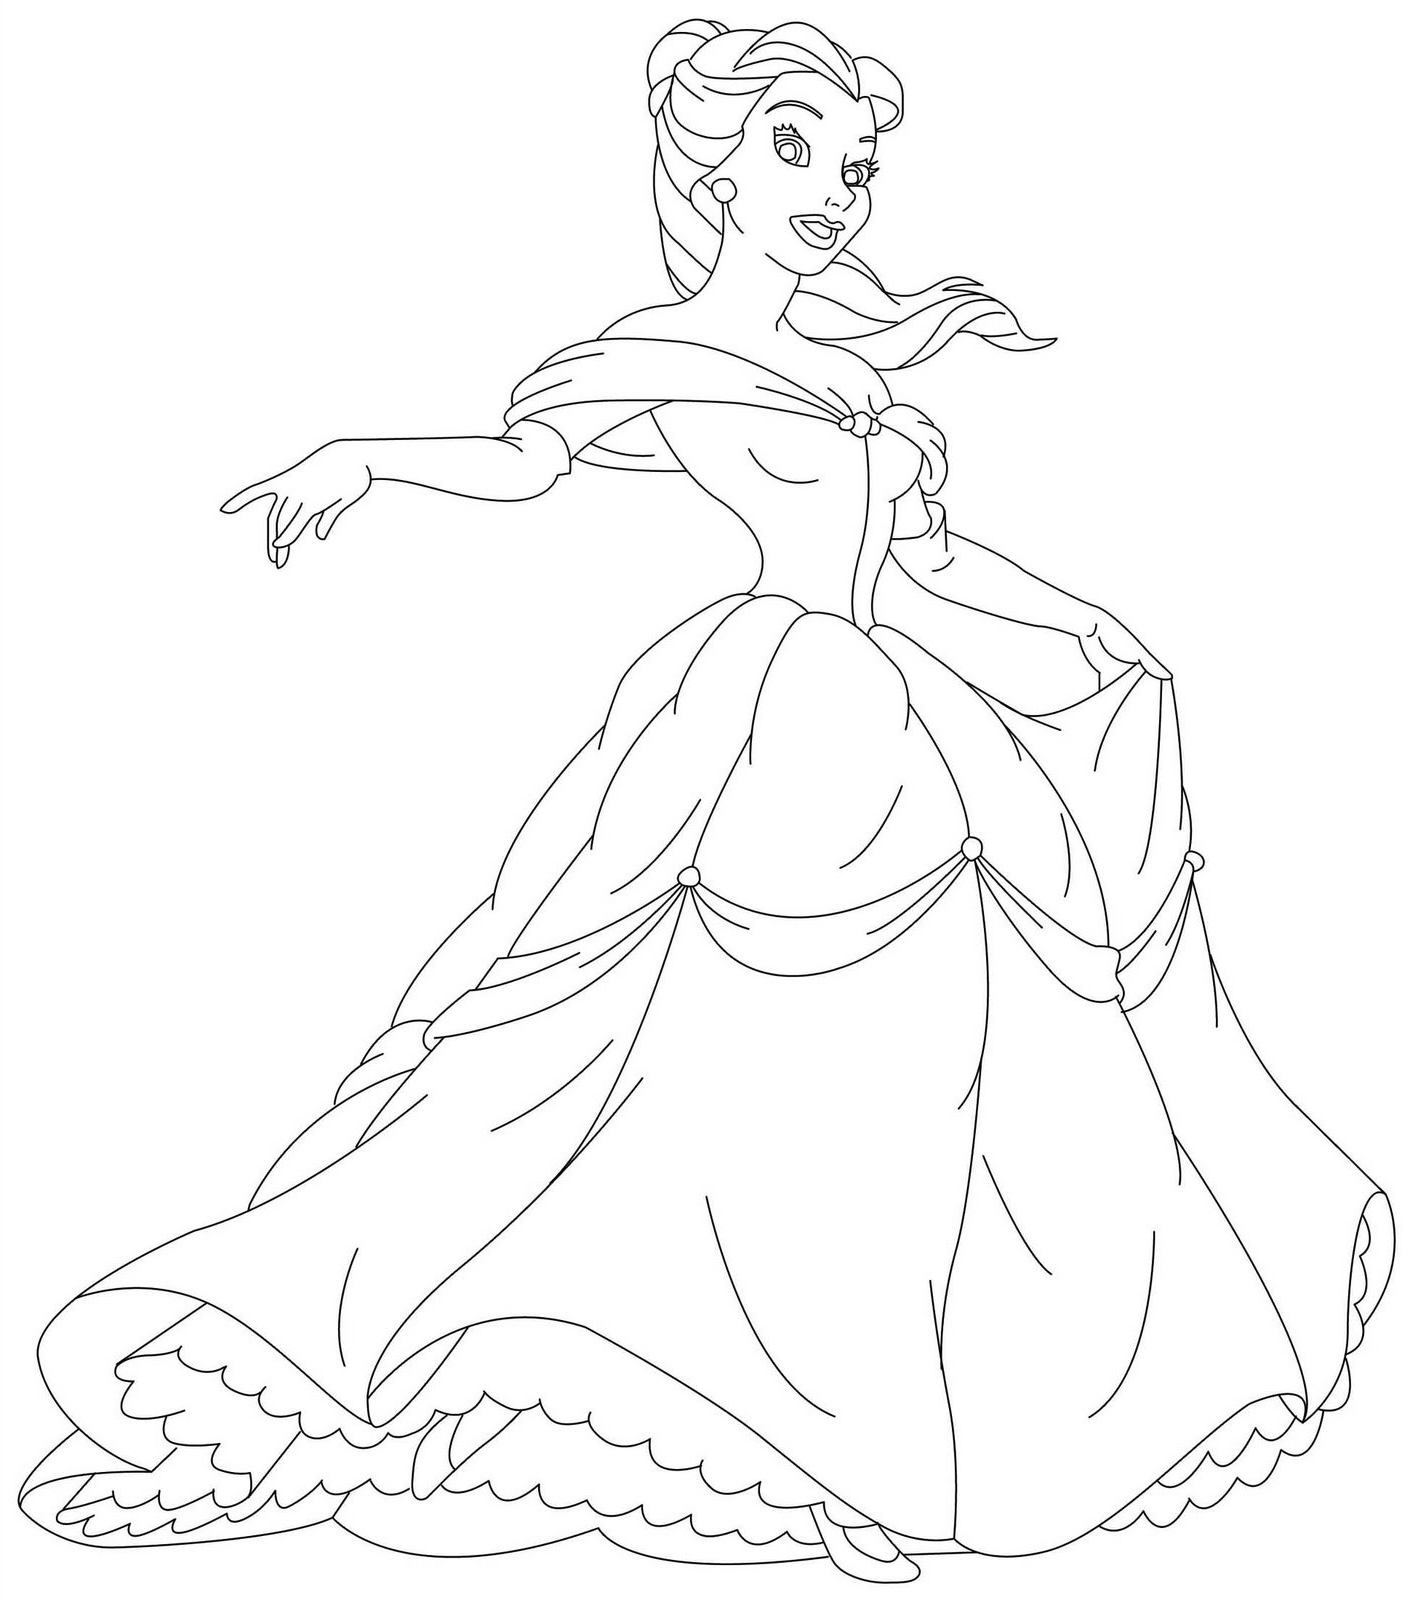 Free Printable Disney Princess Coloring Pages For Kids Princess Coloring Books Free Coloring Sheets